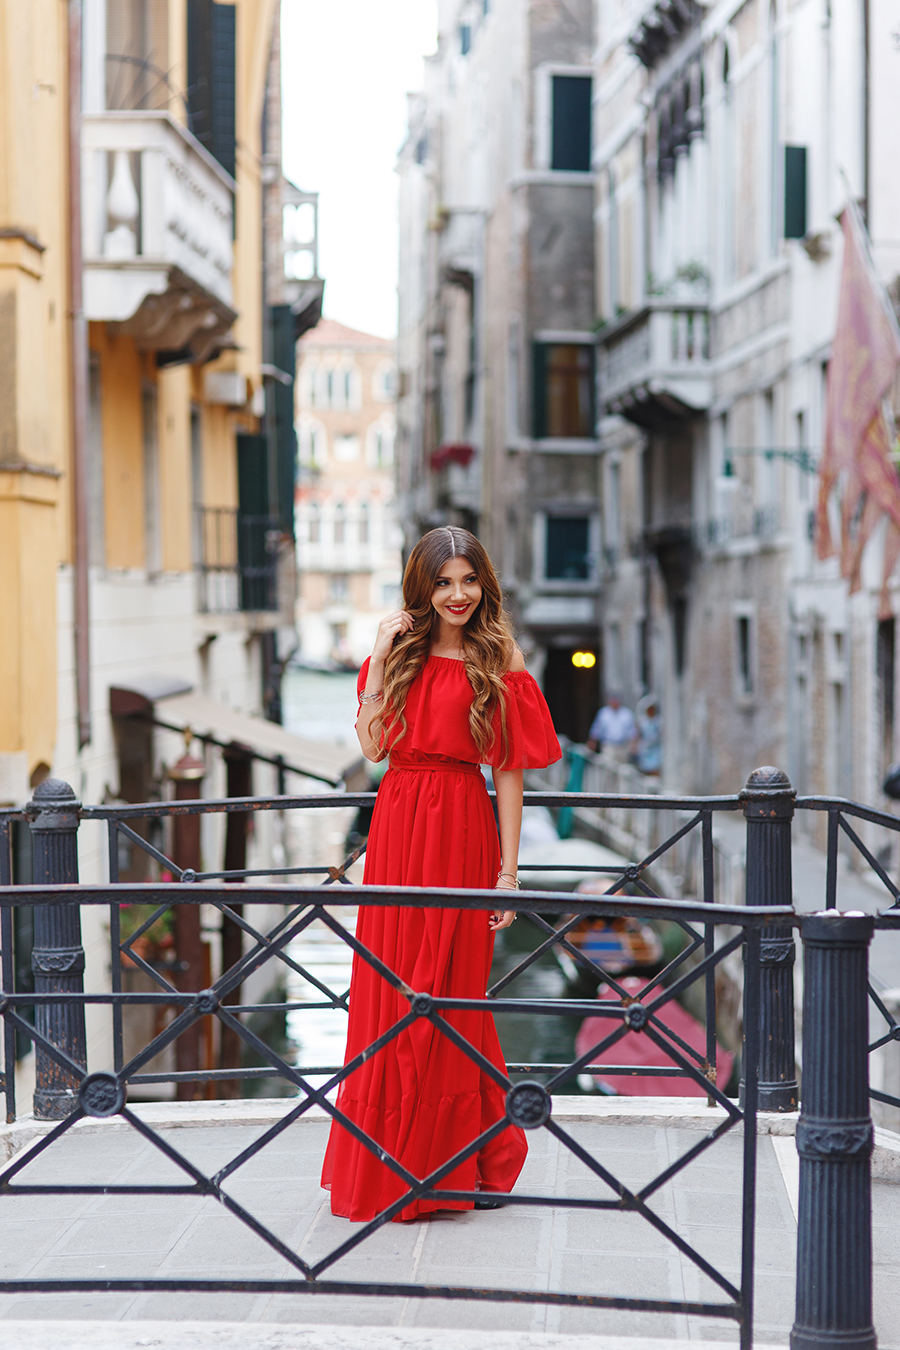 larisa costea, larisa costea blog, the mysterious girl, the mysterious girl blog, fashion blog, blogger, fashion, fashionista, it girl, travel blog, travel, traveler, ootd, lotd, outfit inspiration,look of the day,outfit of the day,what to wear,venice, venezia, san marco,piazza san marco,san marco square,fashion blogger in venice, travelbloggerin venice,larisainvenice, larisainvenezia,larisainitaly,red dress,long red dress, gown,chic diva,chic diva dress,rochie lunga, rochie ocazie, redl lips,red lipstick,bellami hair extension,bellami bella, pigeons, briges, ponte, gondola